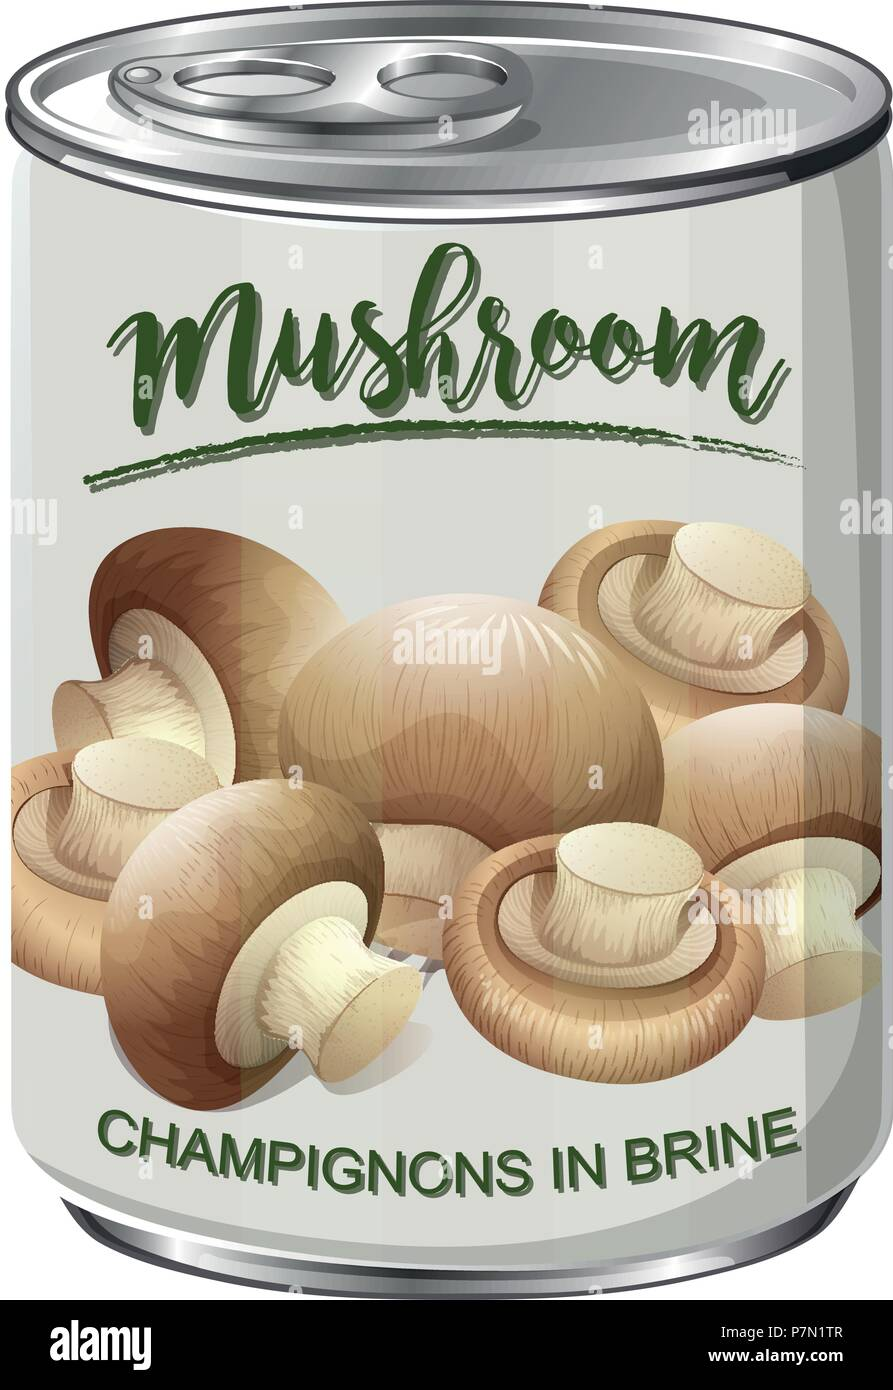 A Can of Mushroom illustration - Stock Vector